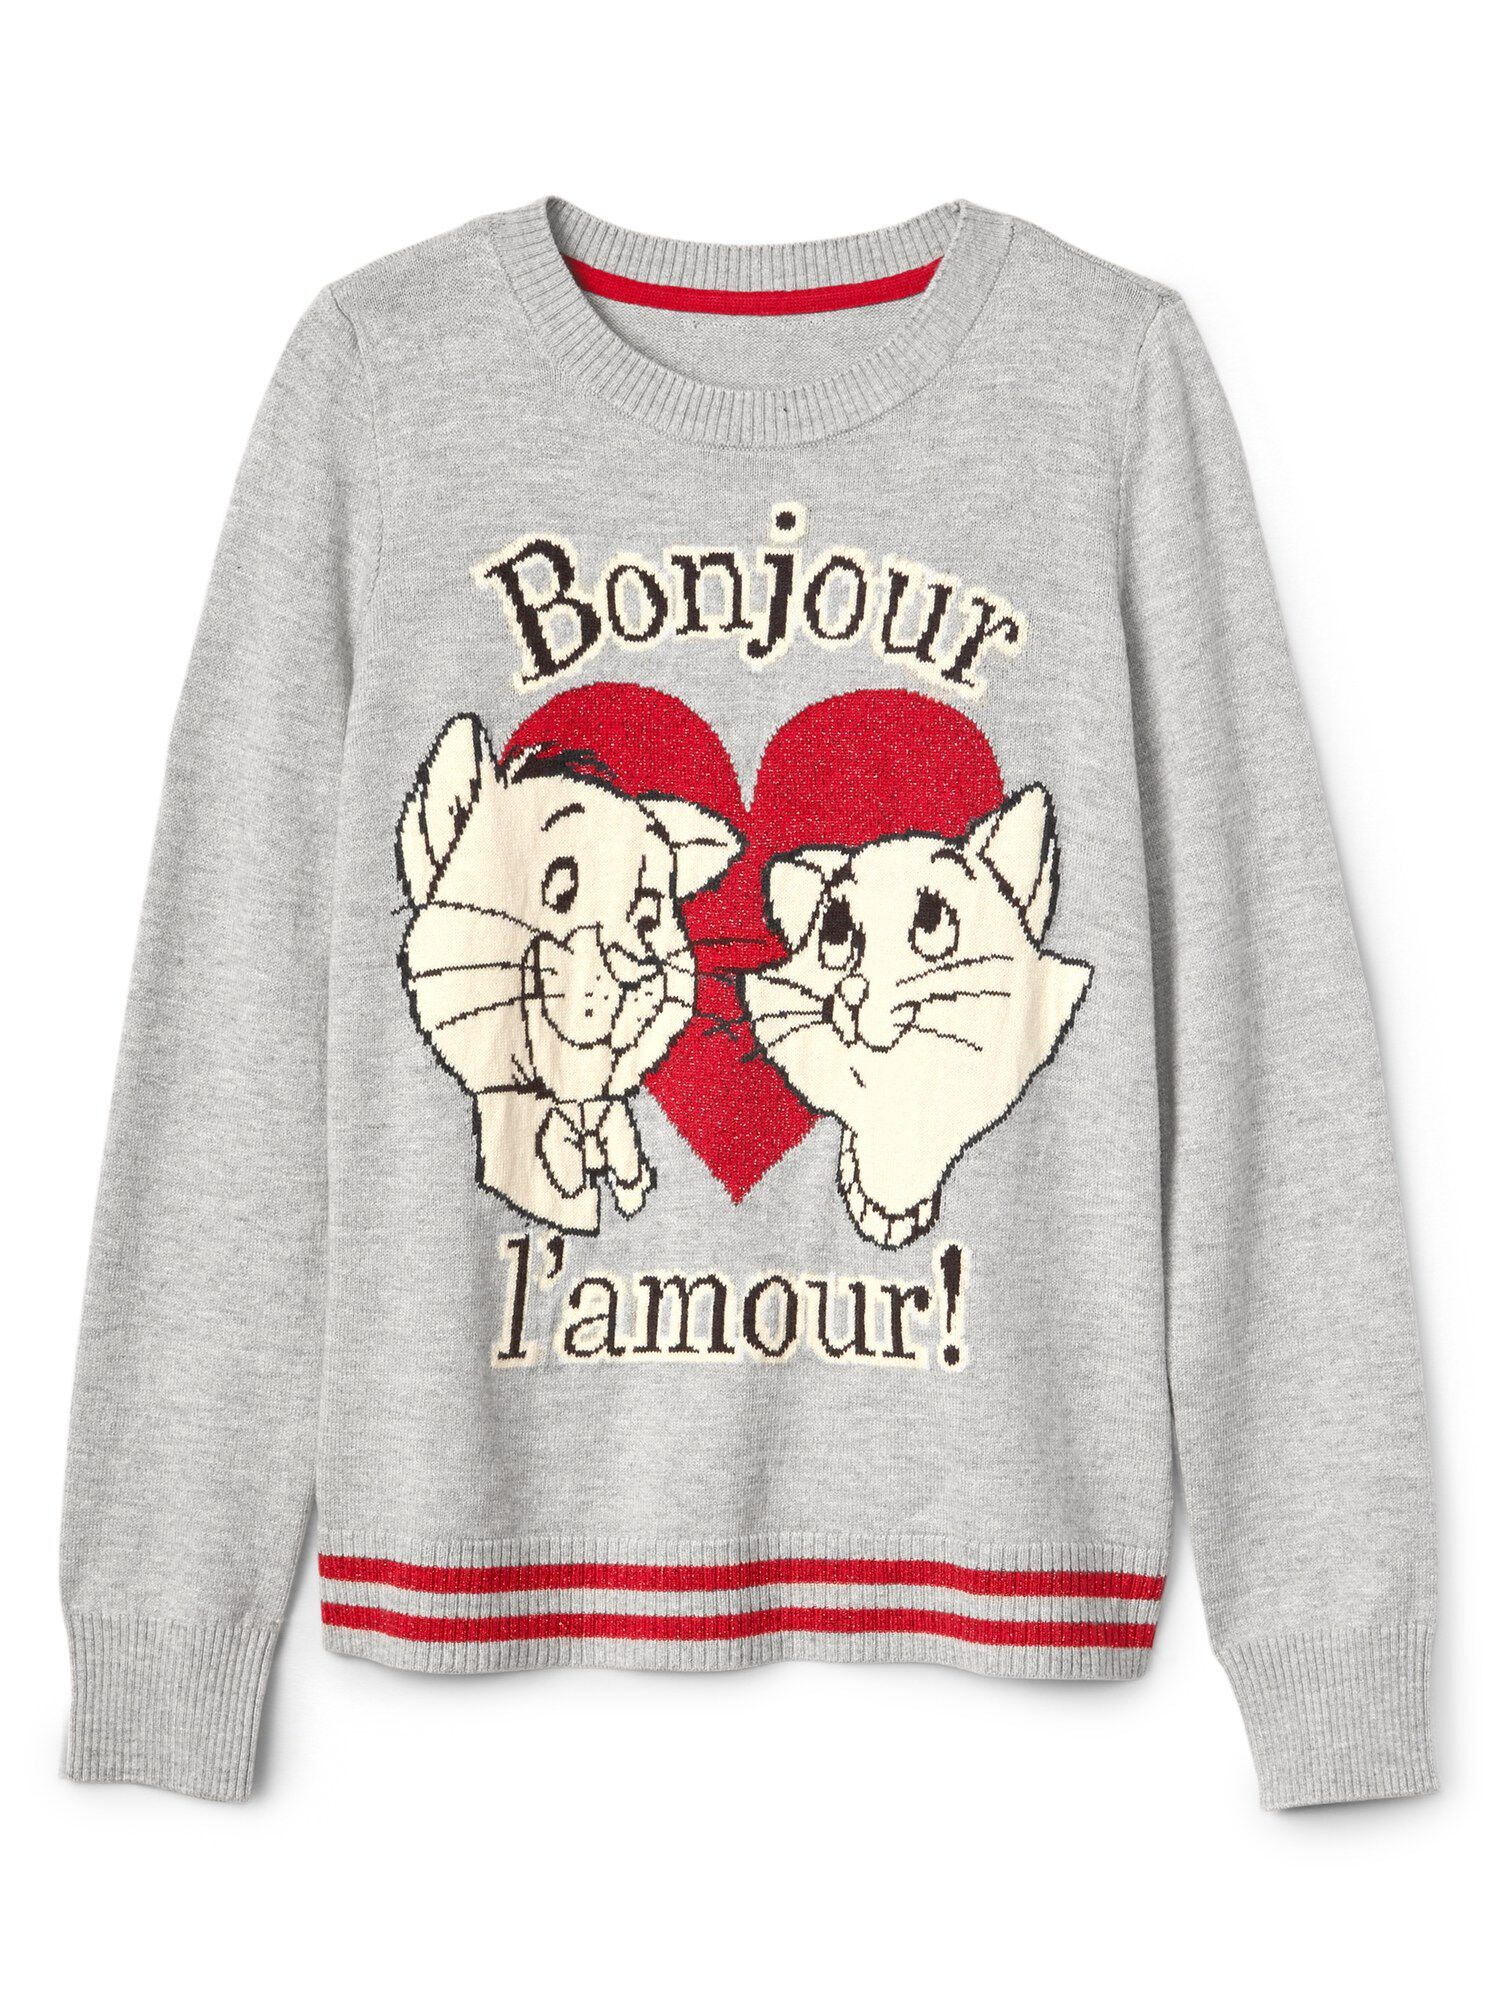 9dd916f6 GapKids | Disney Aristocats Crewneck Sweater | Gap® UK